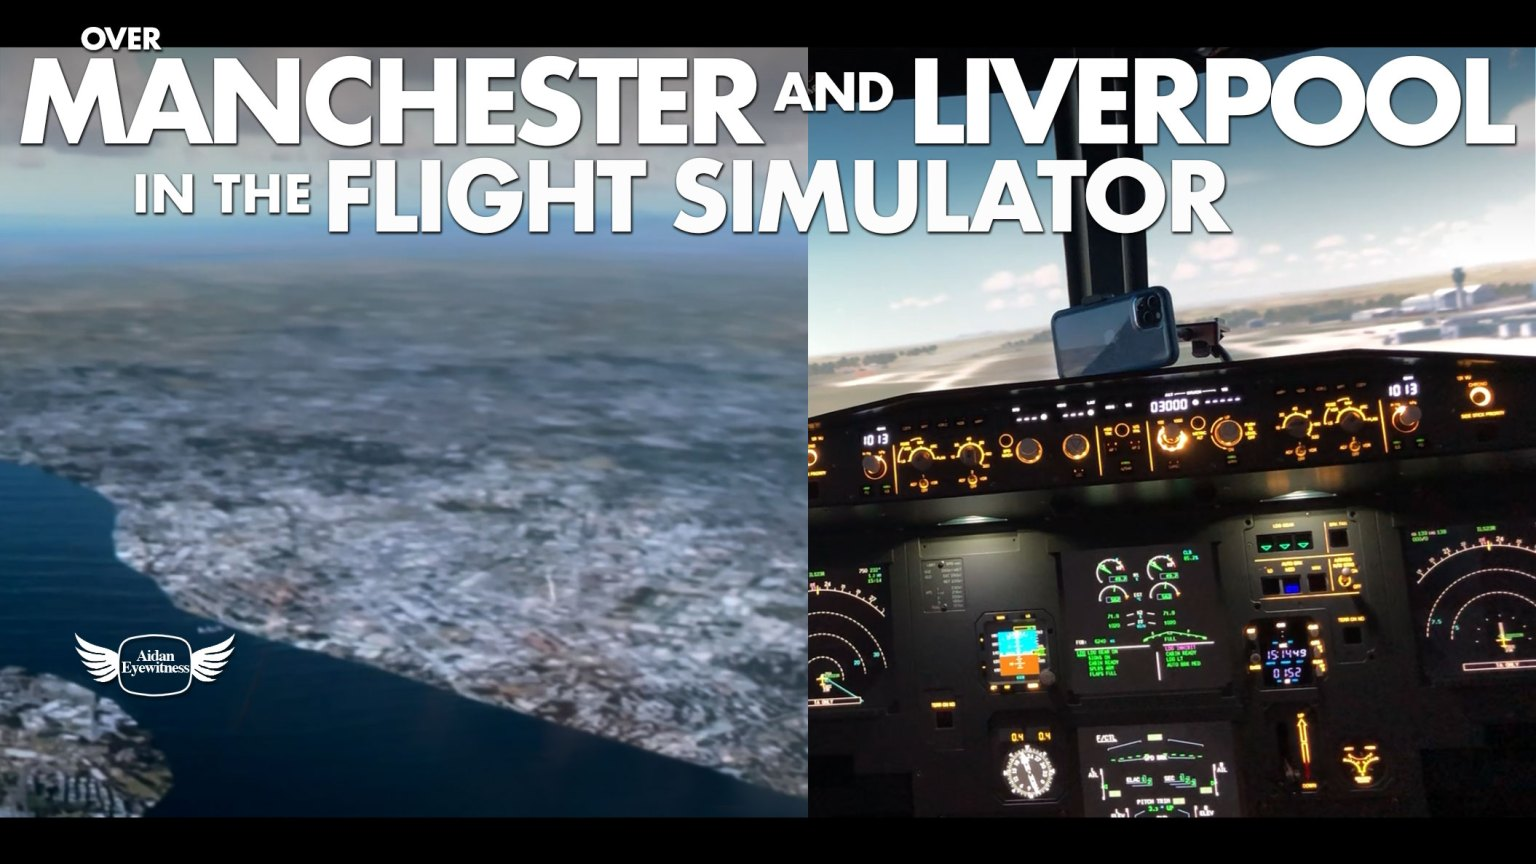 Over Manchester and Lverpool in the flight simulator